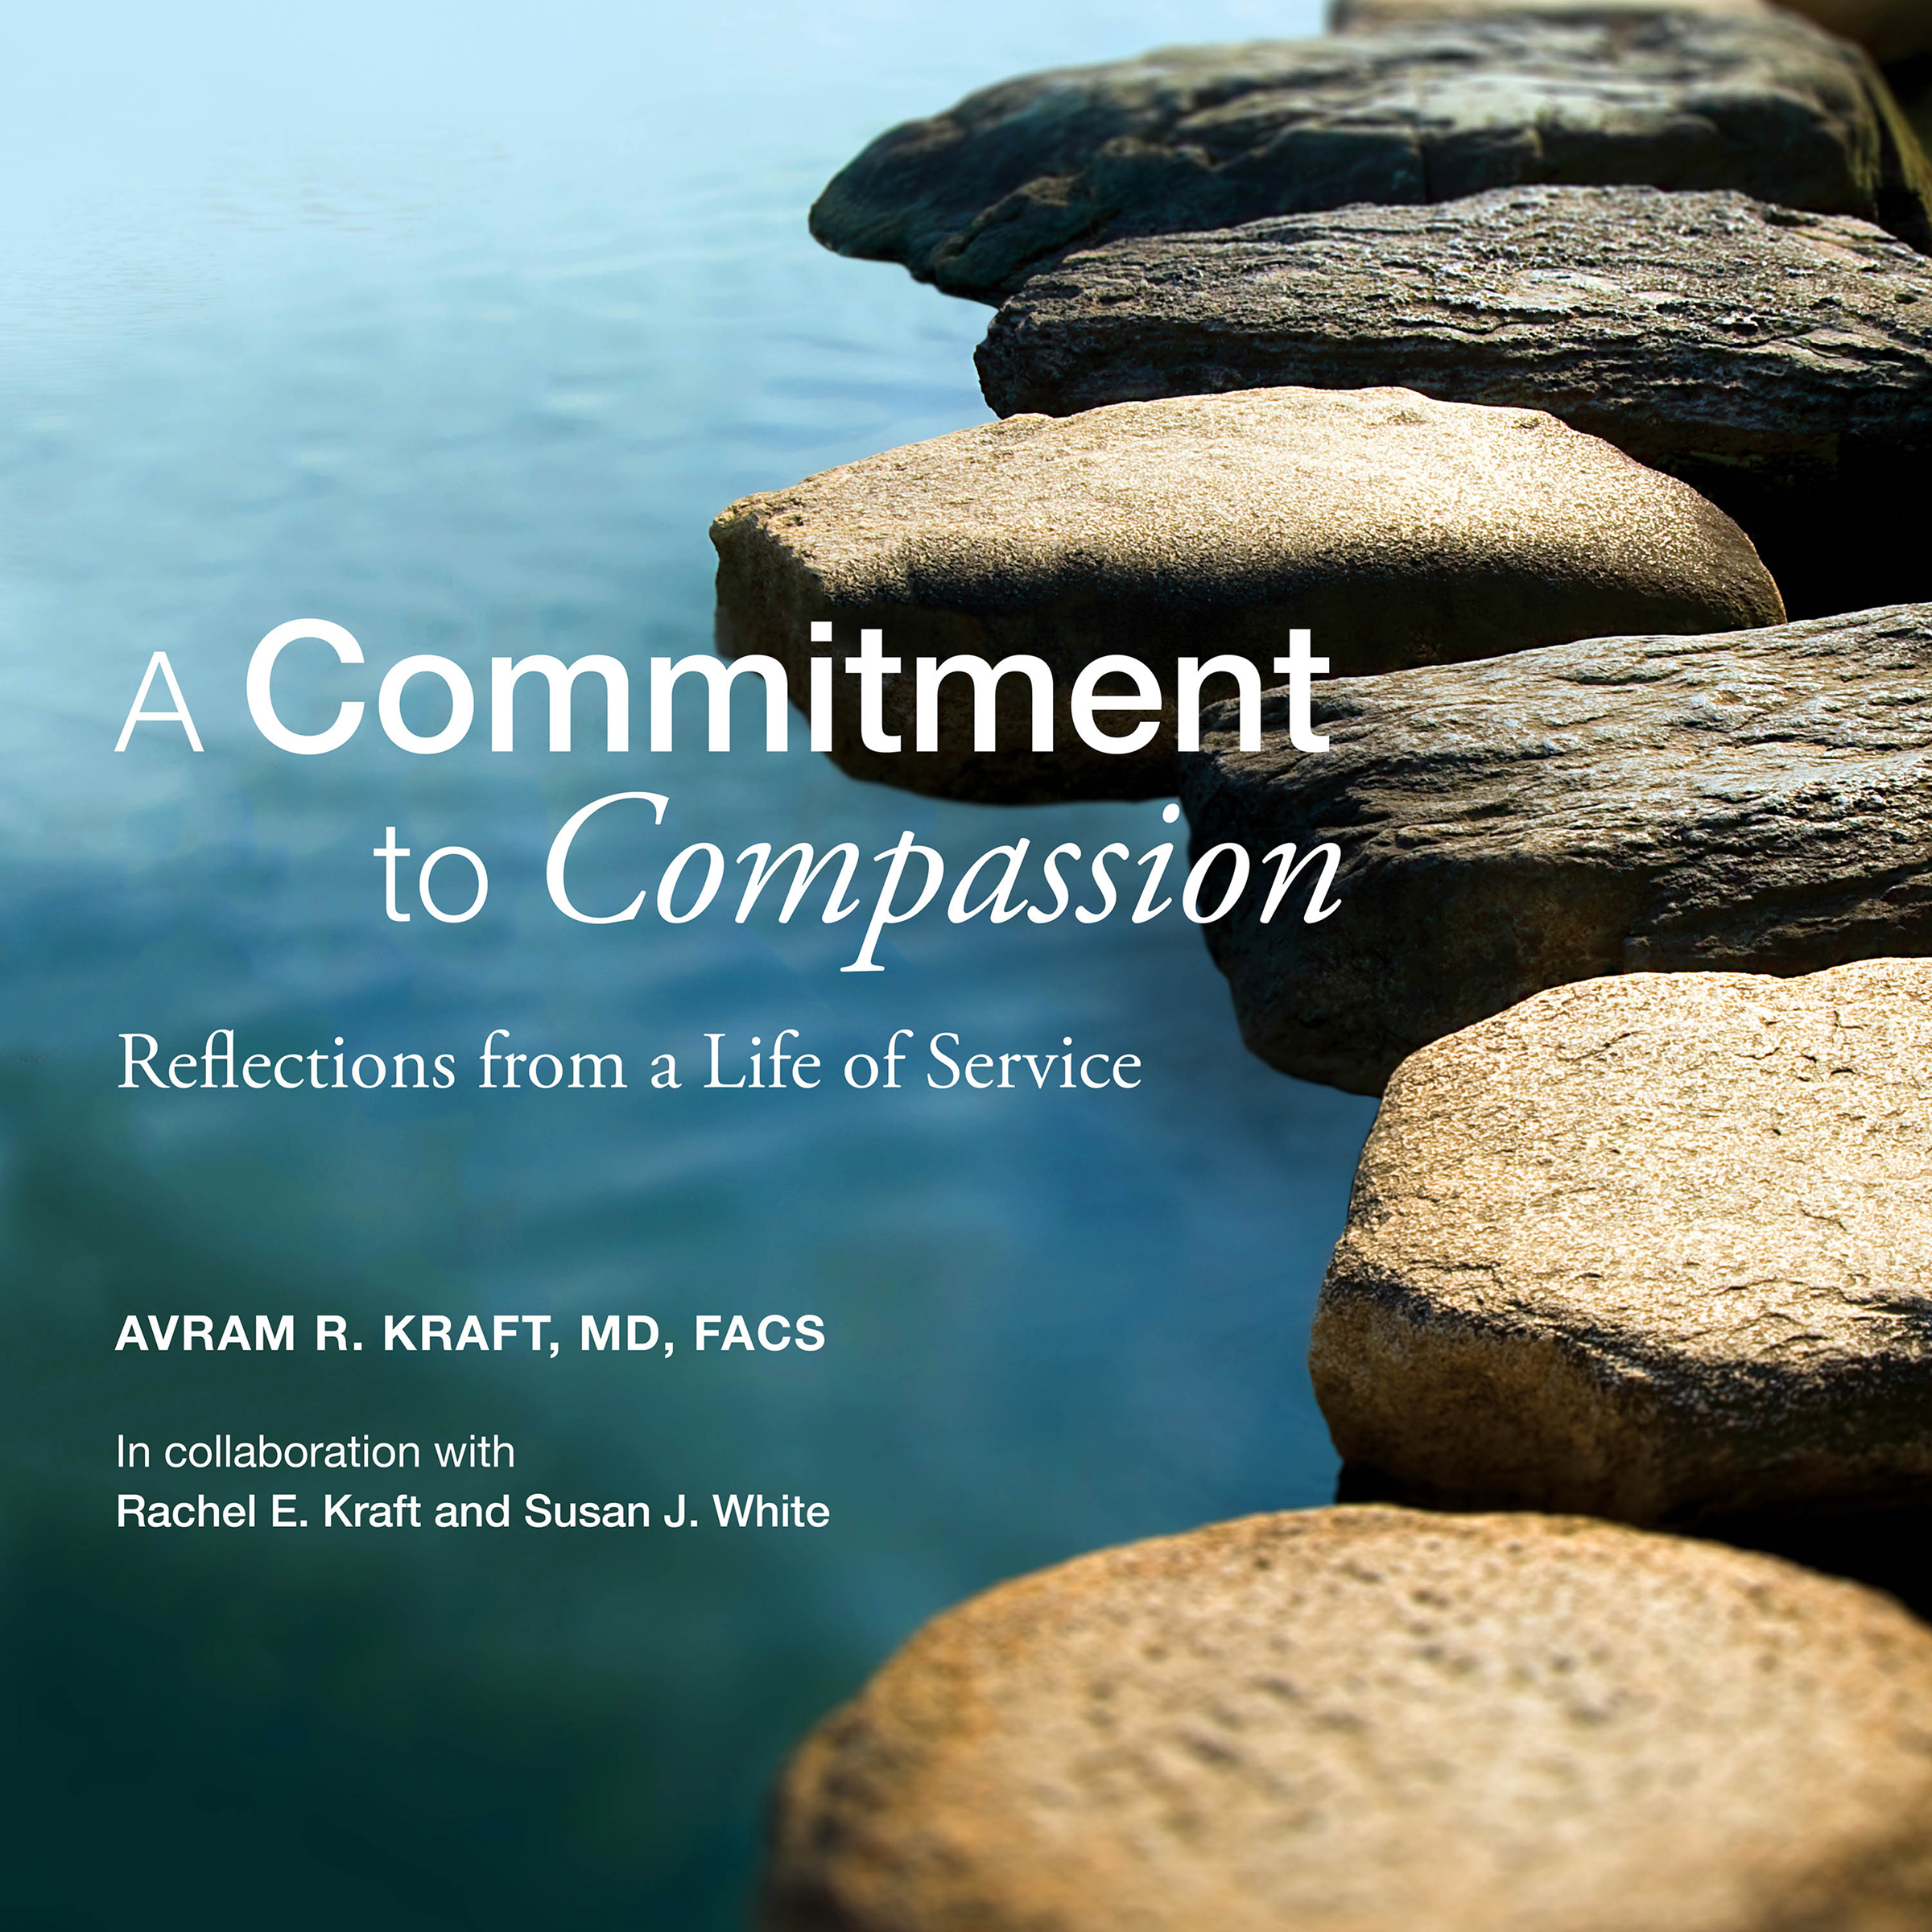 A Commitment to Compassion